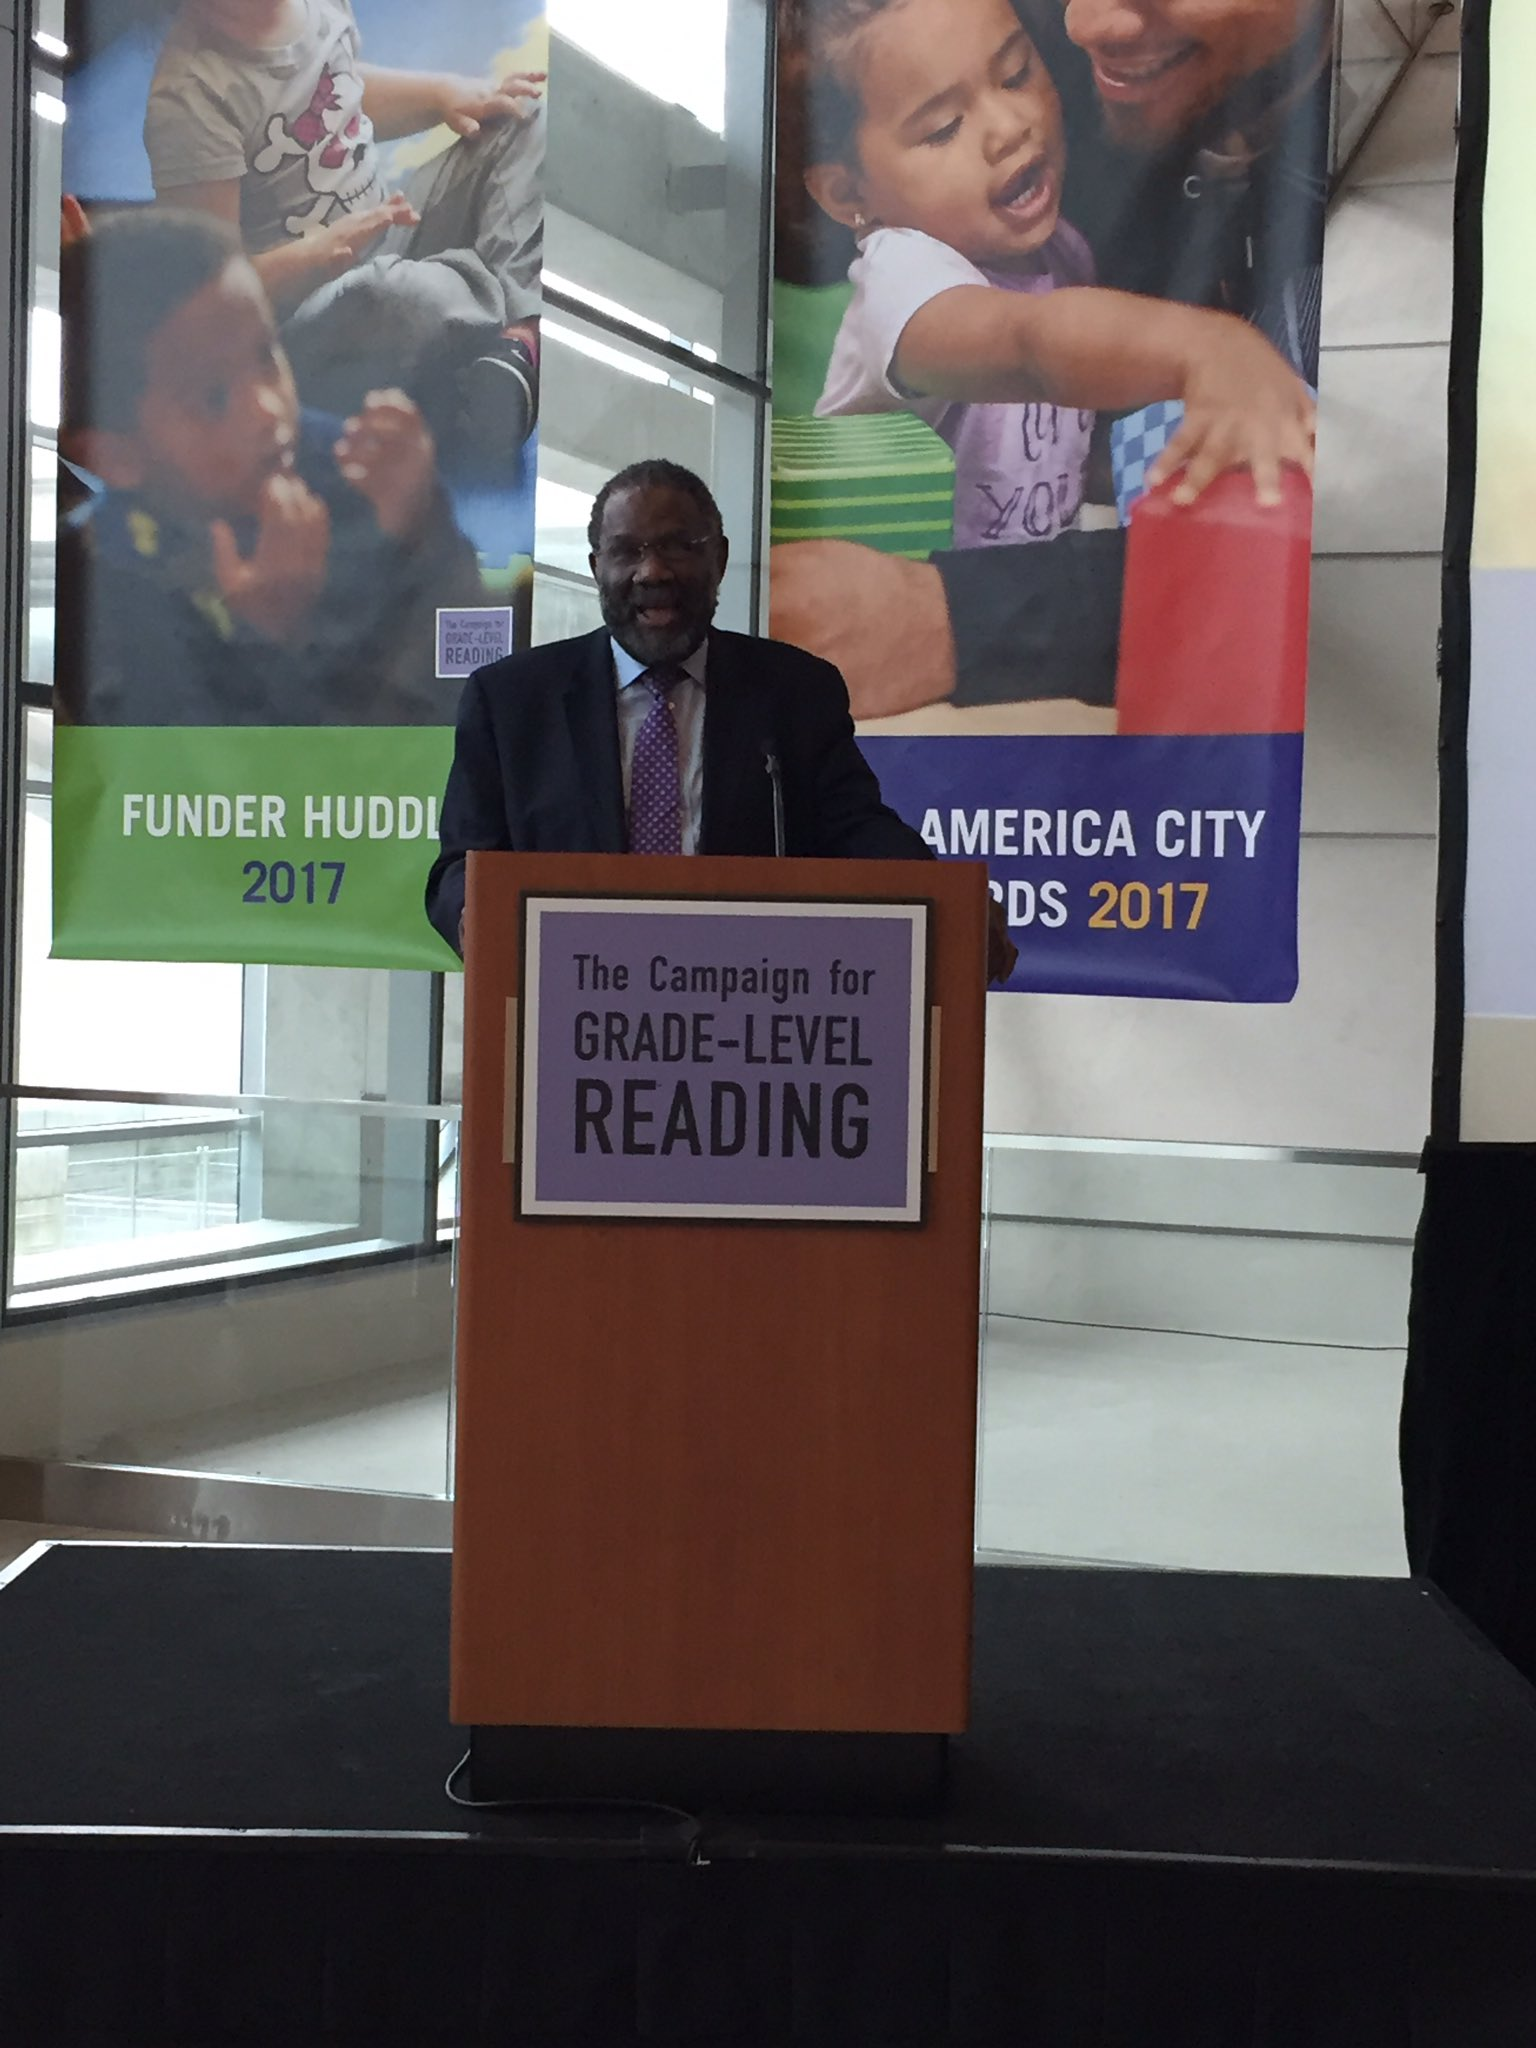 """Funder Huddle participants: """"You brought to us energy and inspiration and we cannot thank you enough."""" -Ralph Smith #GLRWeek https://t.co/e90dnS4653"""